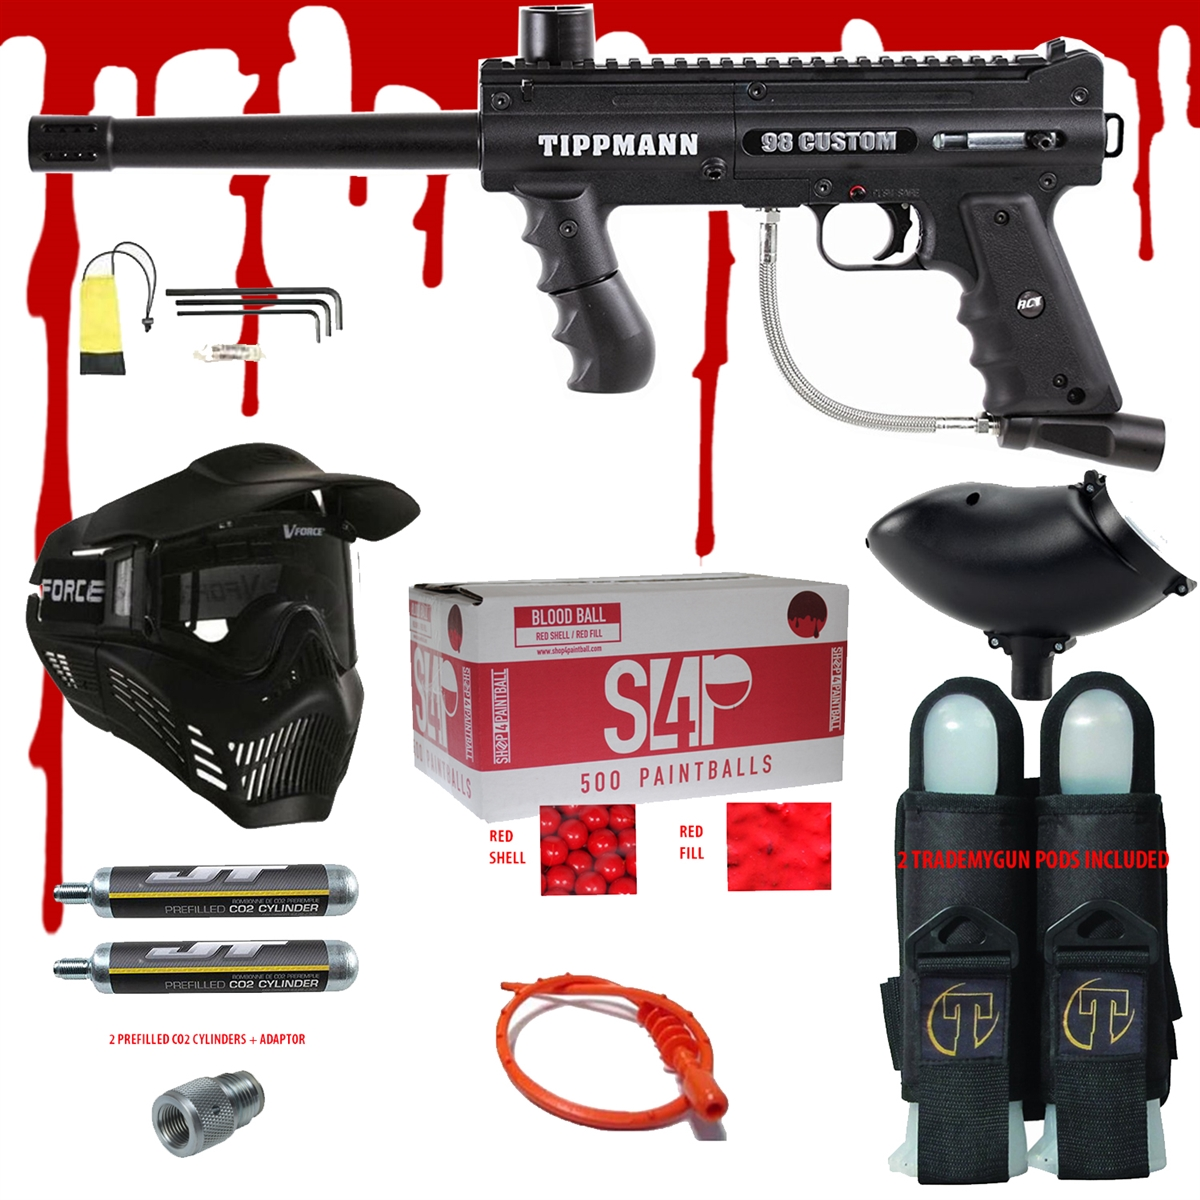 TIPPMANN 98 CUSTOM ACT BASIC .68 CAL PAINTBALL GUN KIT READY PLAY BLOOD PACKAGE